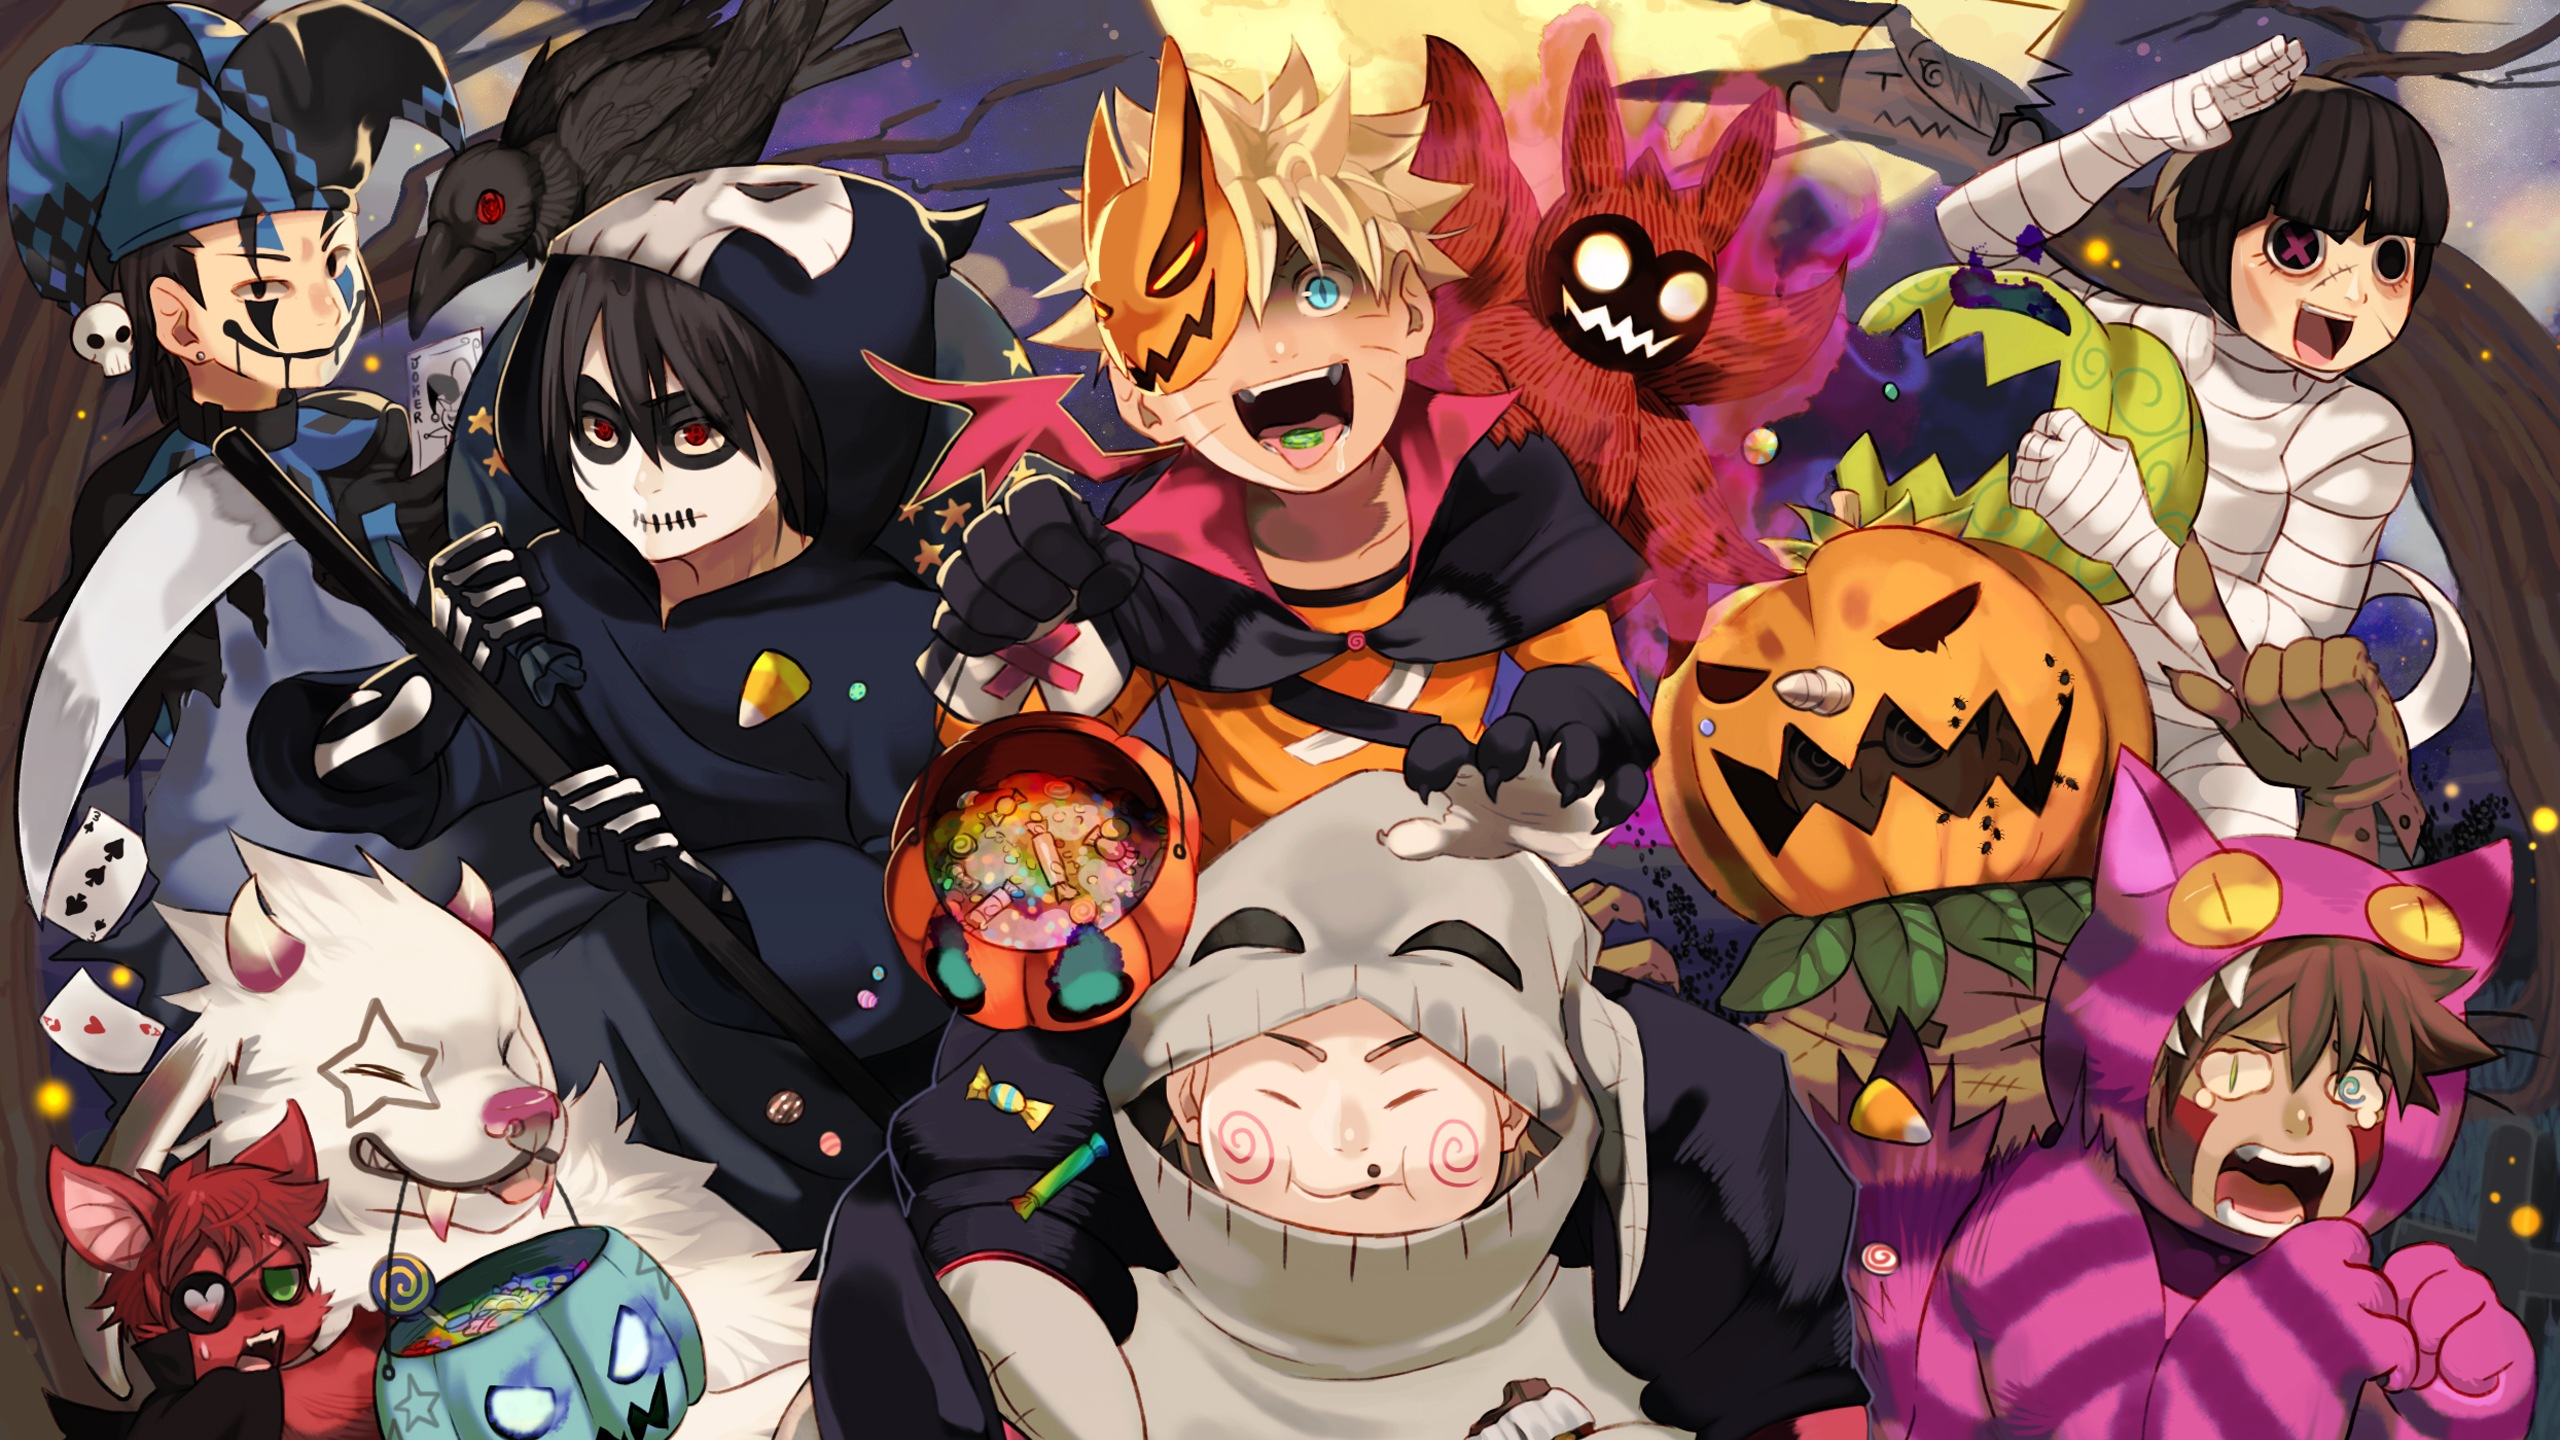 narutos halloween party hd wallpaper background image